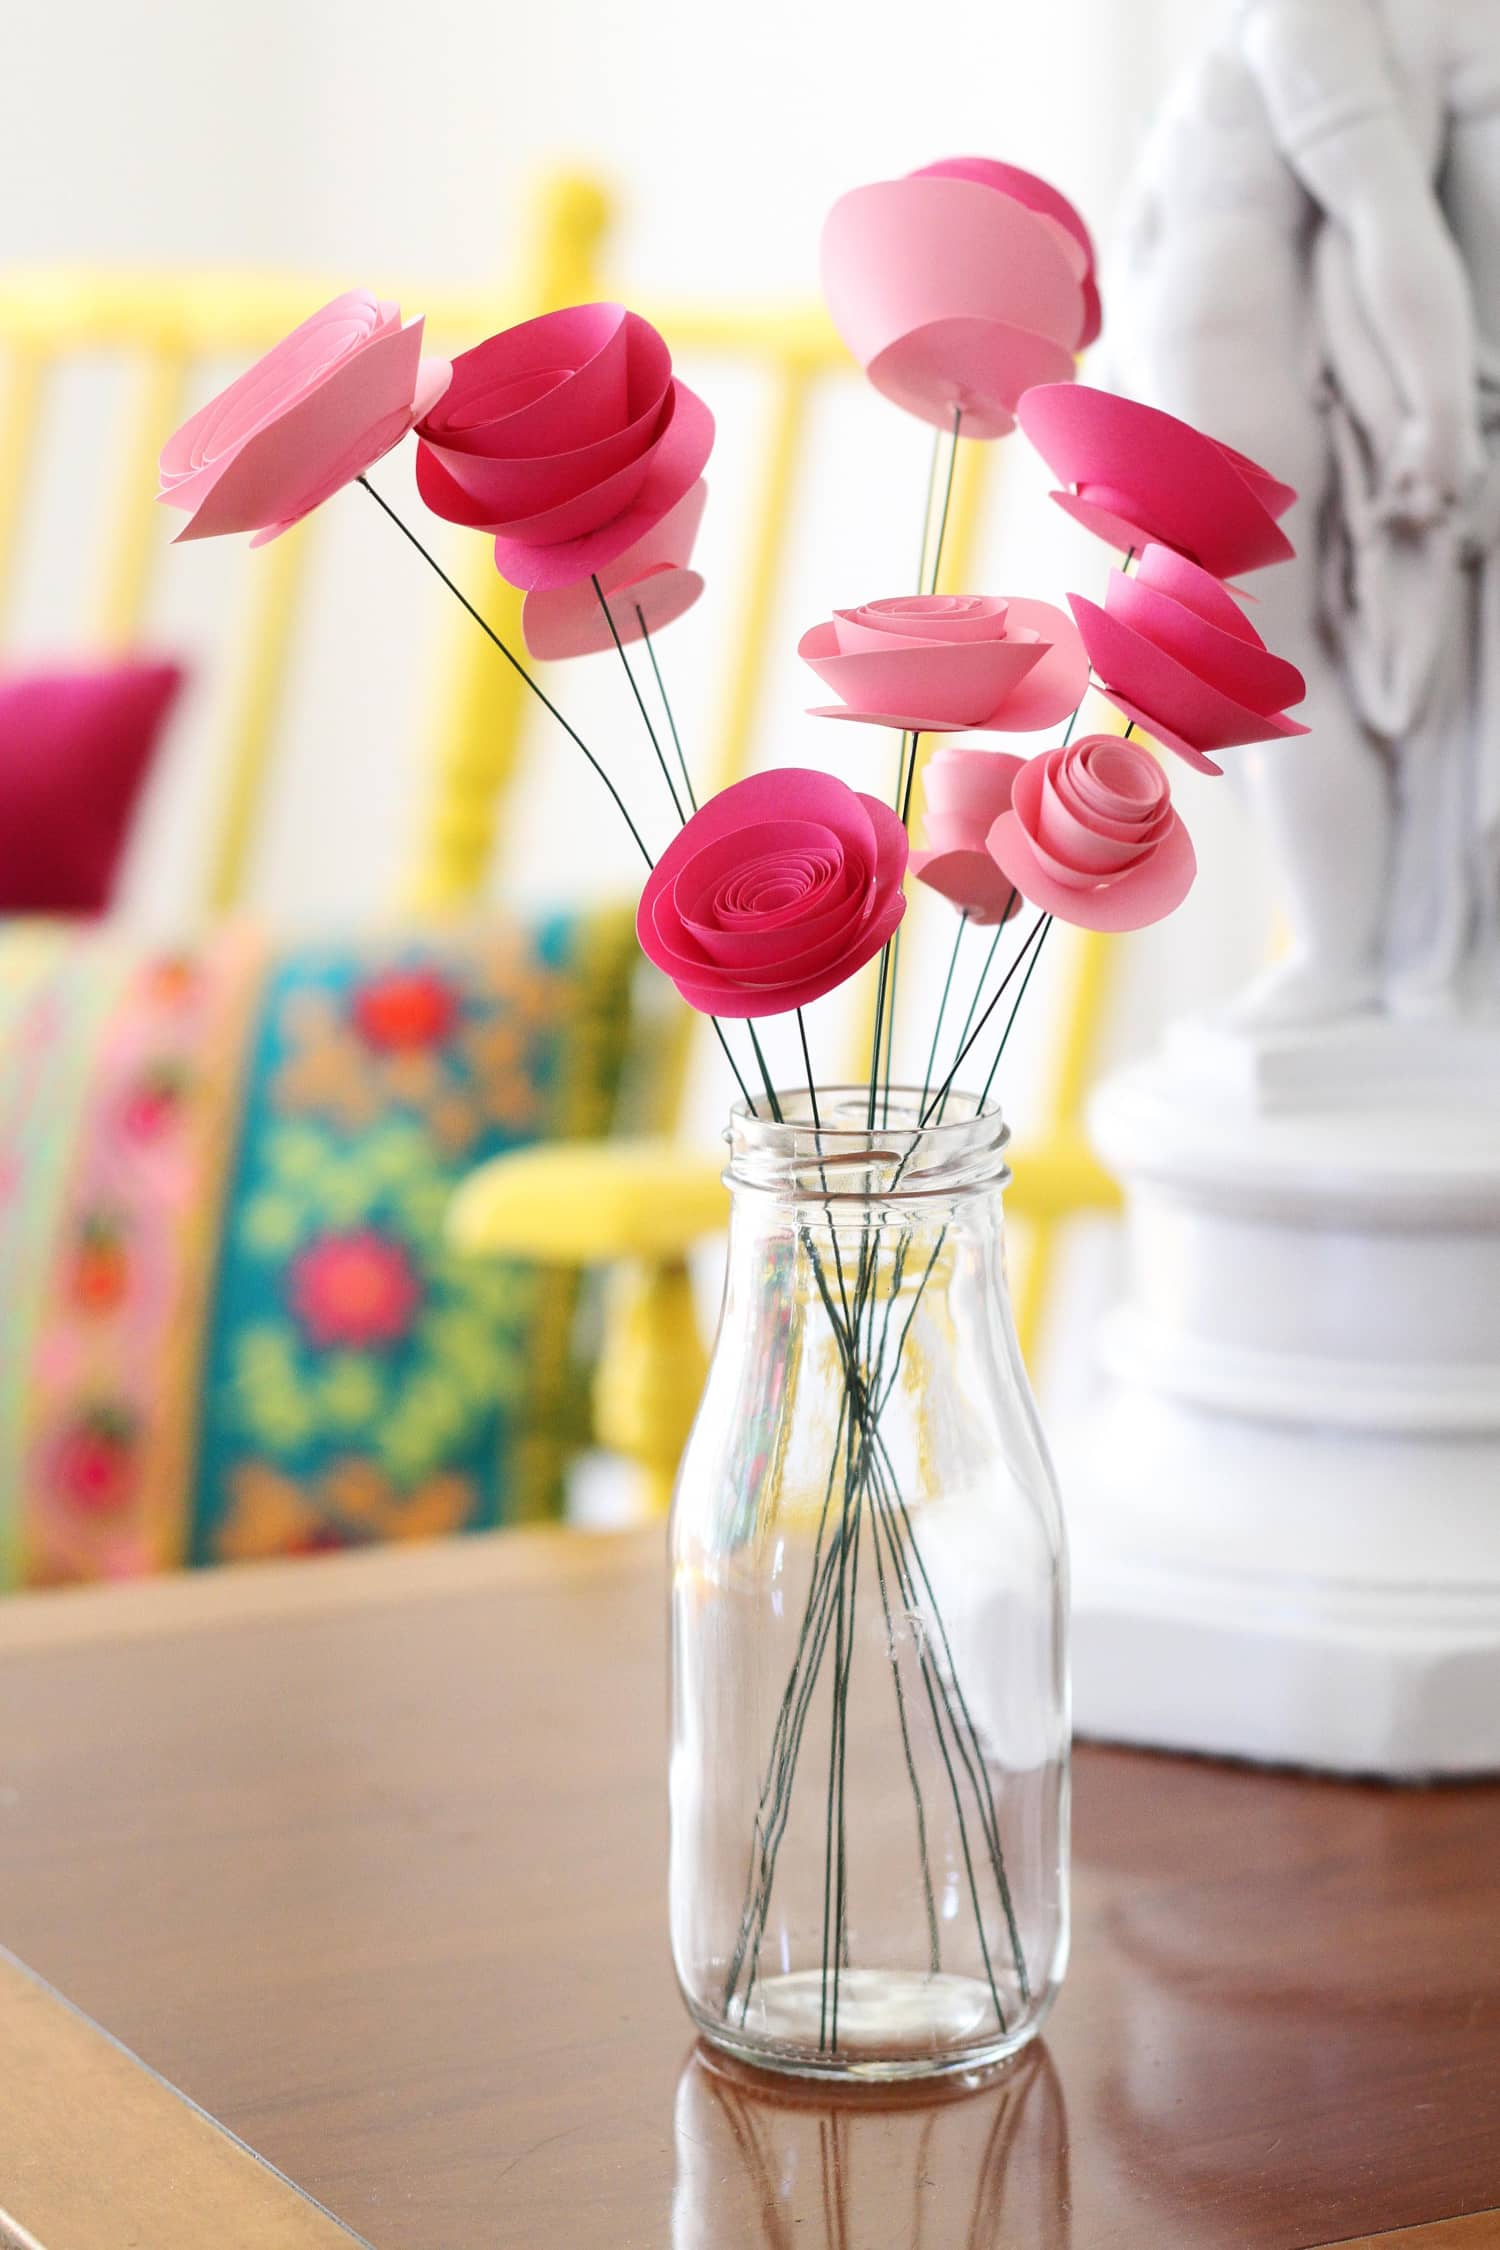 How To Make Paper Flowers: Spray Roses